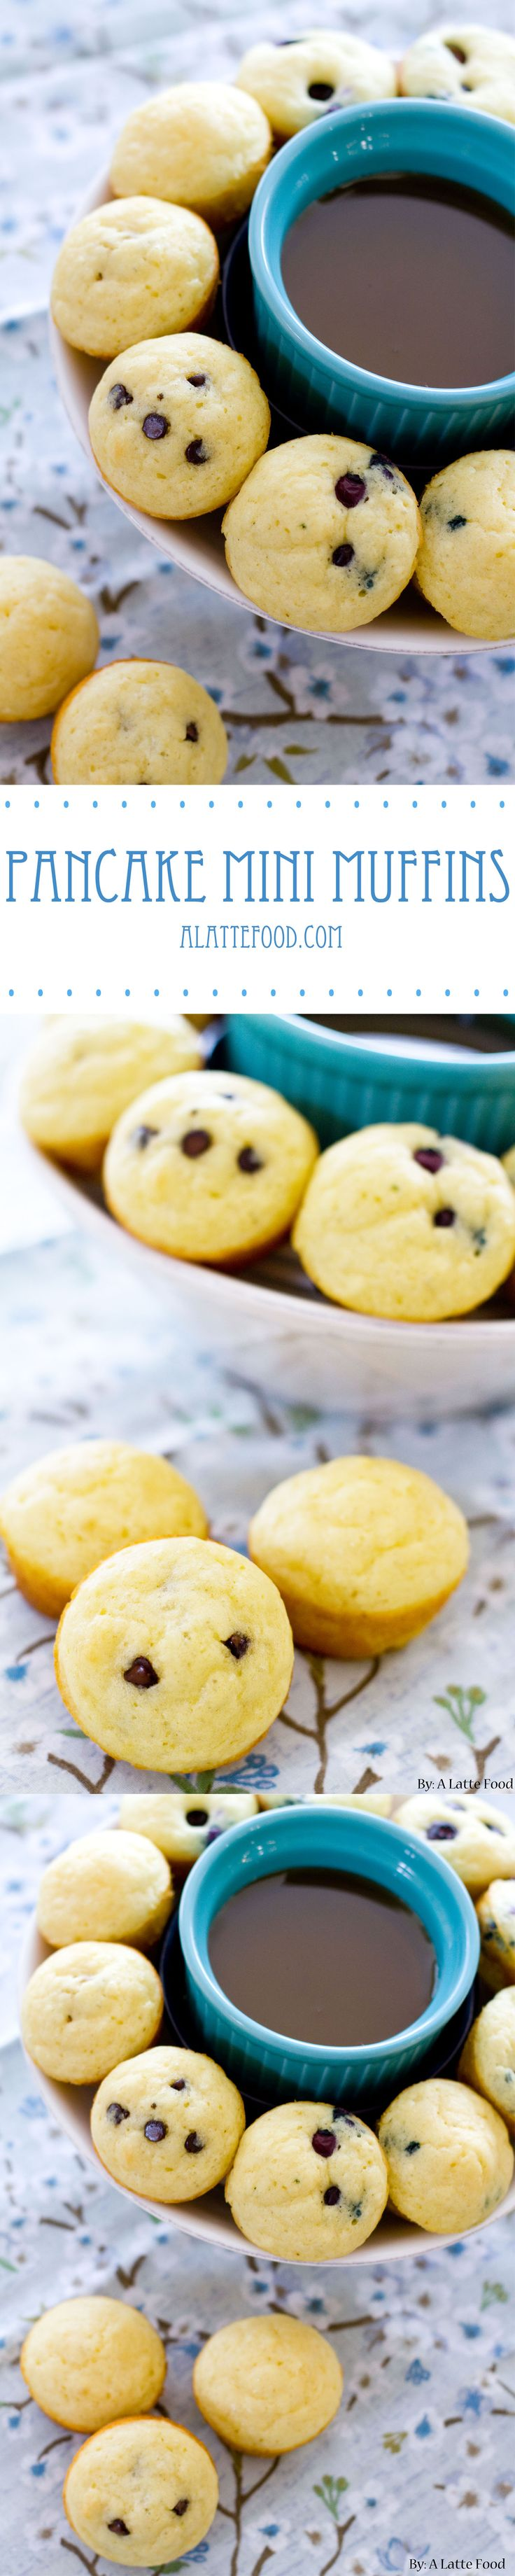 Pancake Mini Muffins   Breakfast has never been so fun, easy, and delicious. These pancake mini muffins are the best way to start the day!